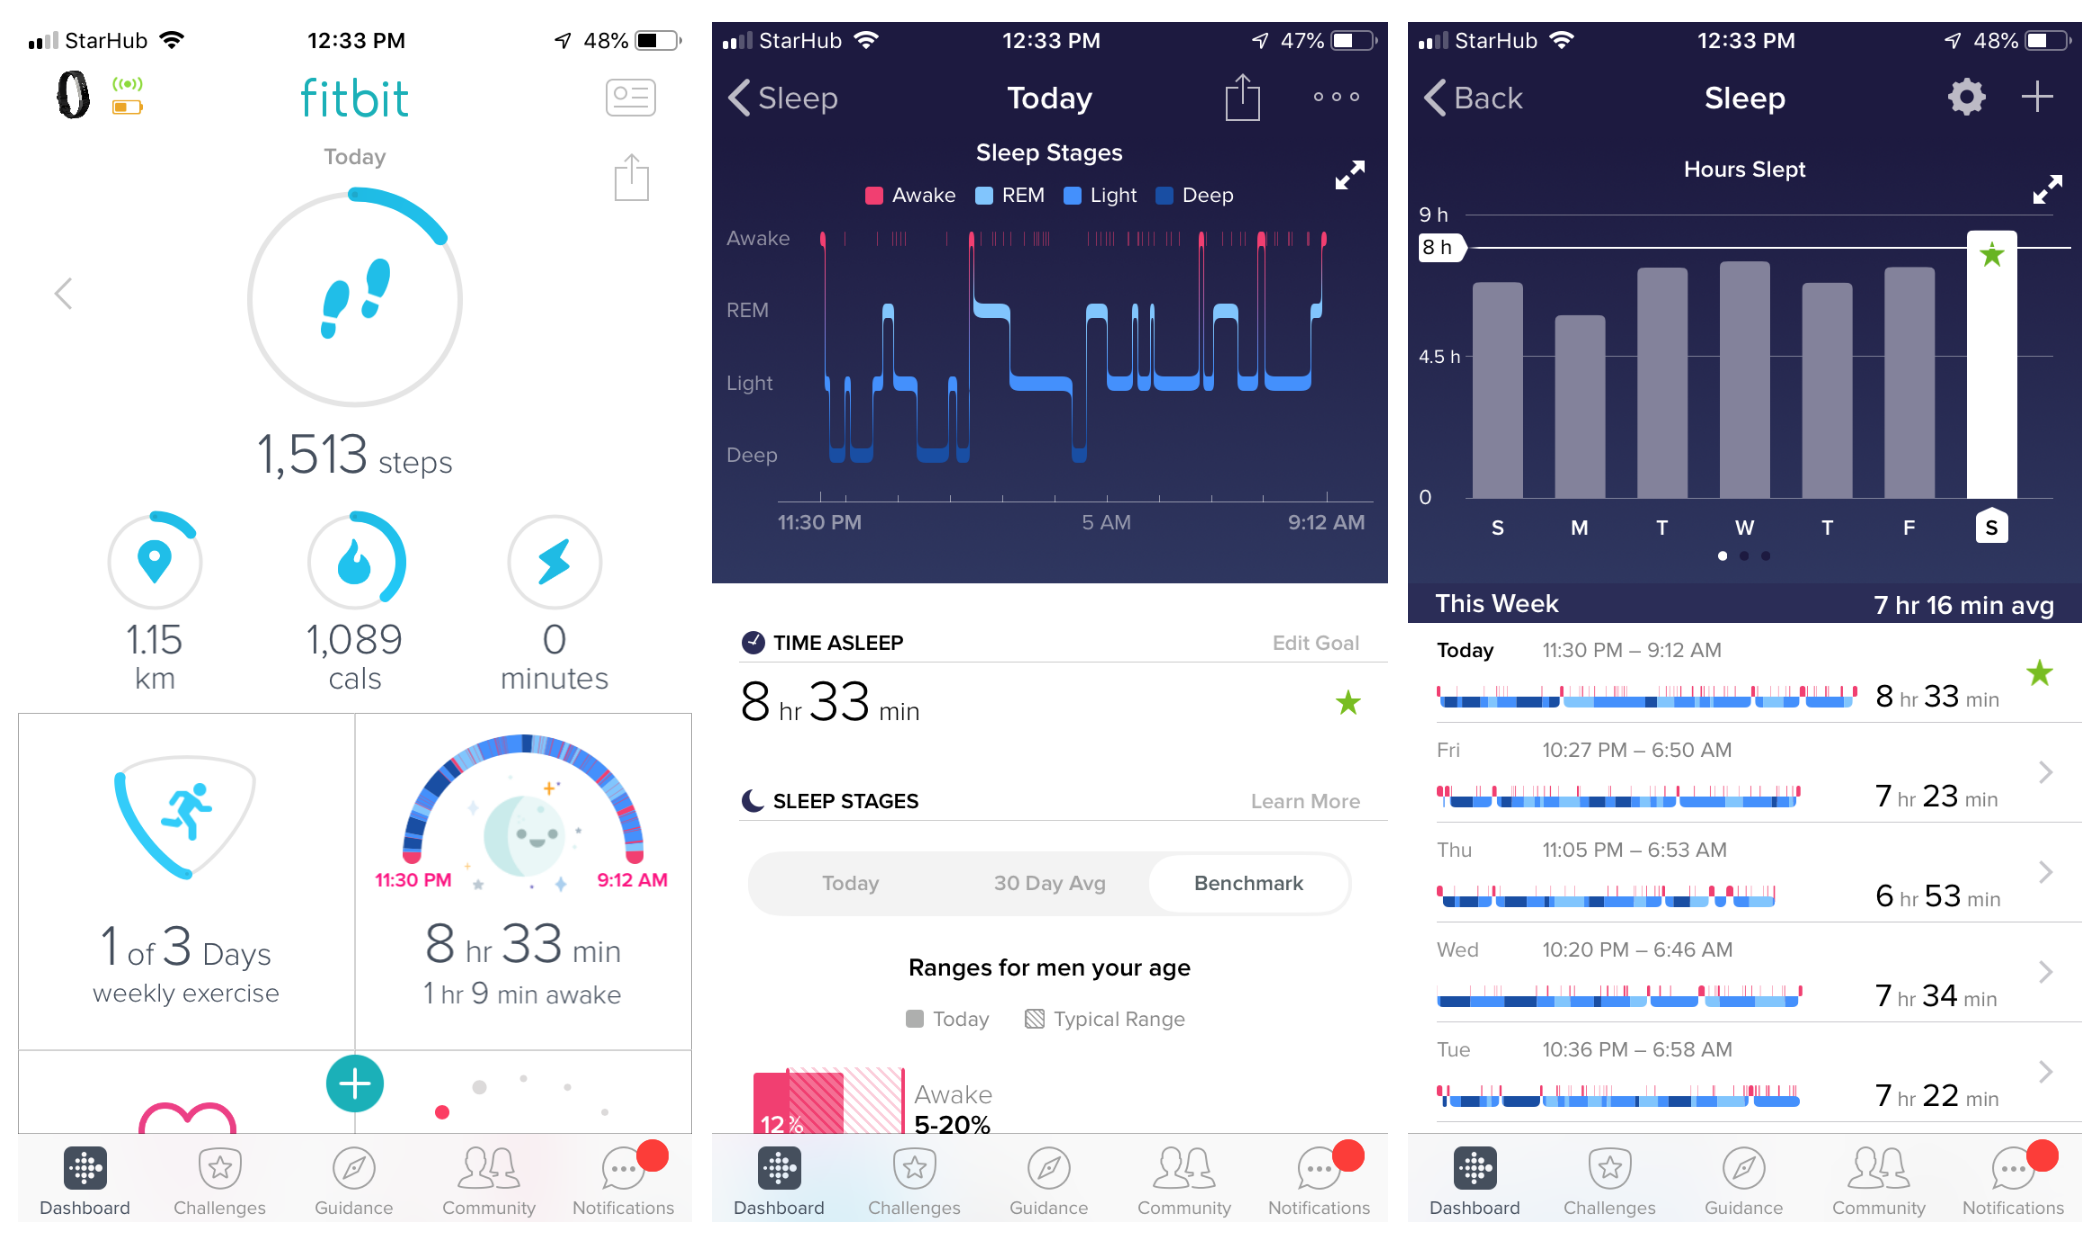 The Fitbit app stores all the data from your device, and provides useful tools to interact with it like simple challenges and notifications.